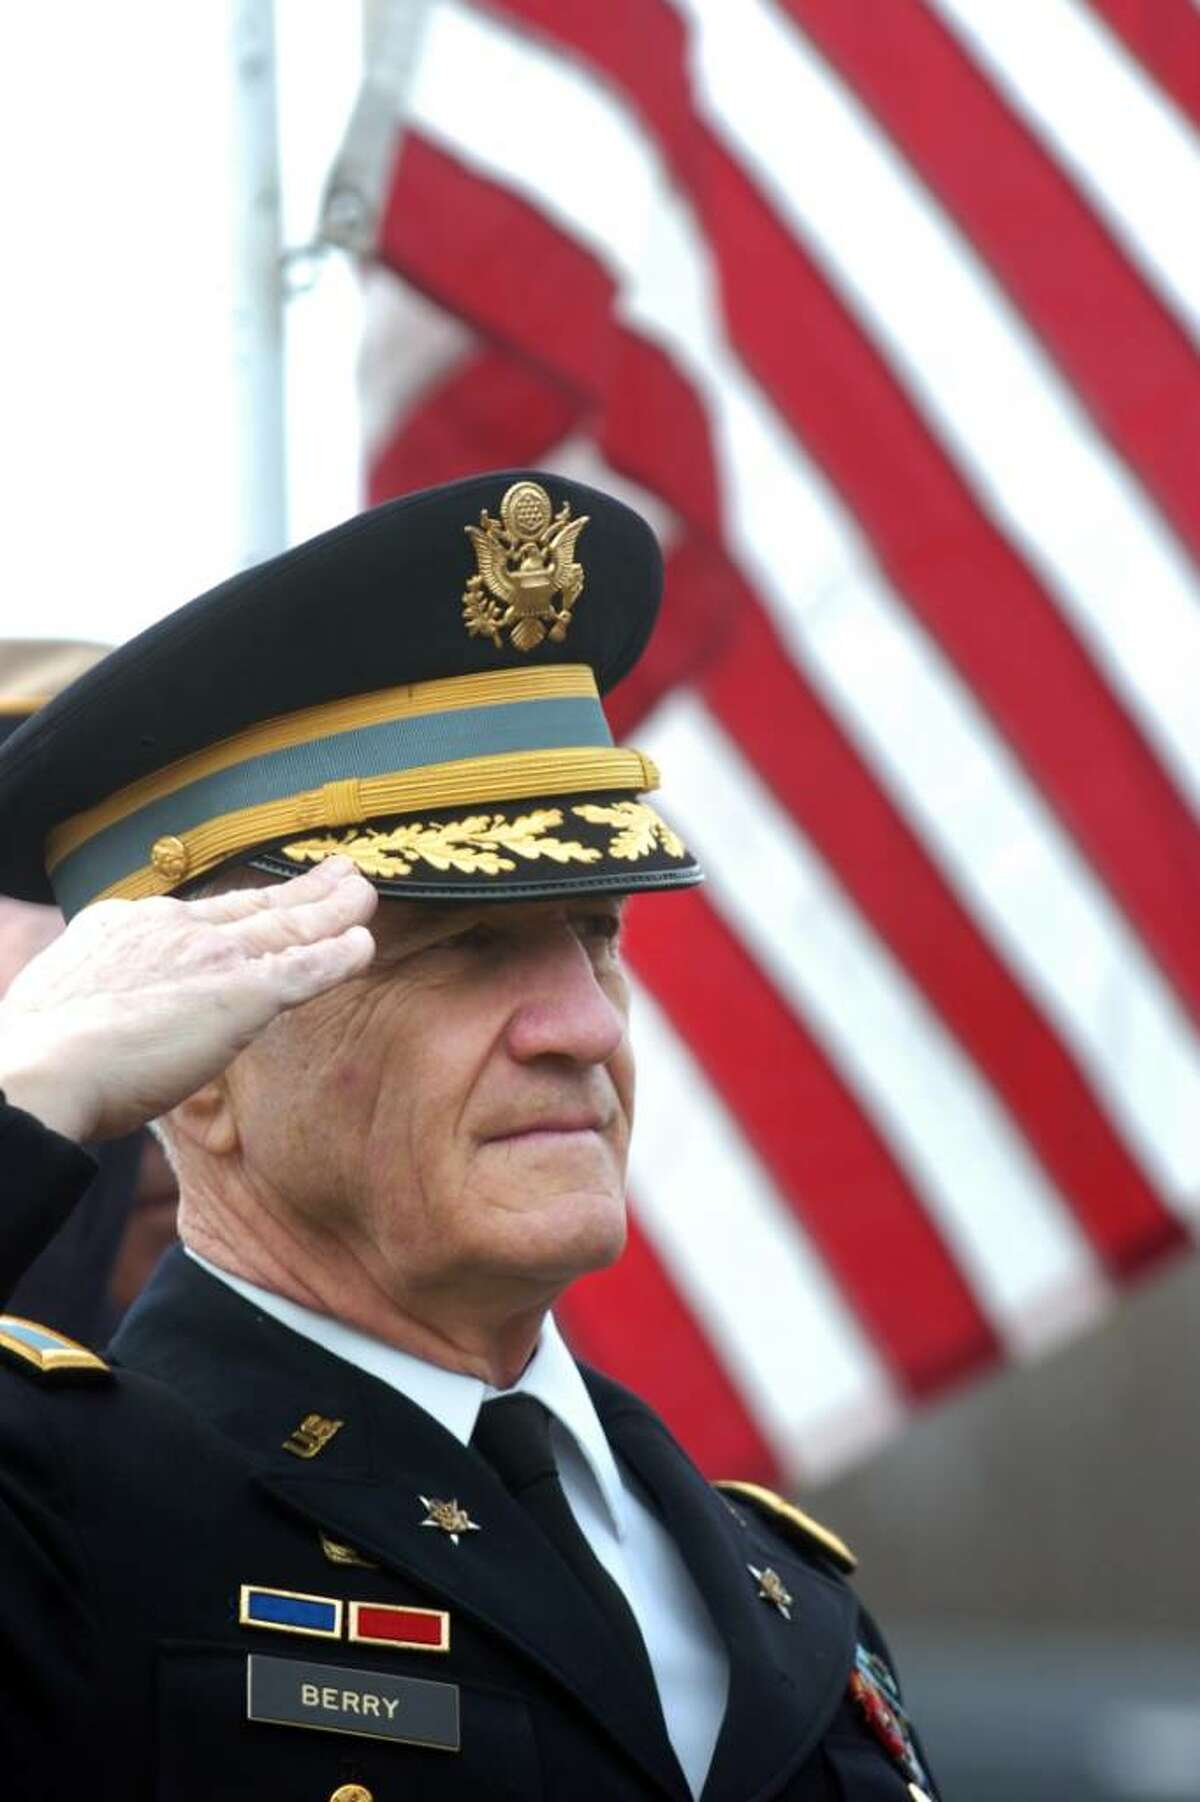 Retired U.S. Army Col. Ron Berry, of Easton, salutes as the National Anthem is played at the start of the Veterans Day ceremony on the Stepney Green, in Monroe, Conn. Wed. Nov. 11th, 2009.